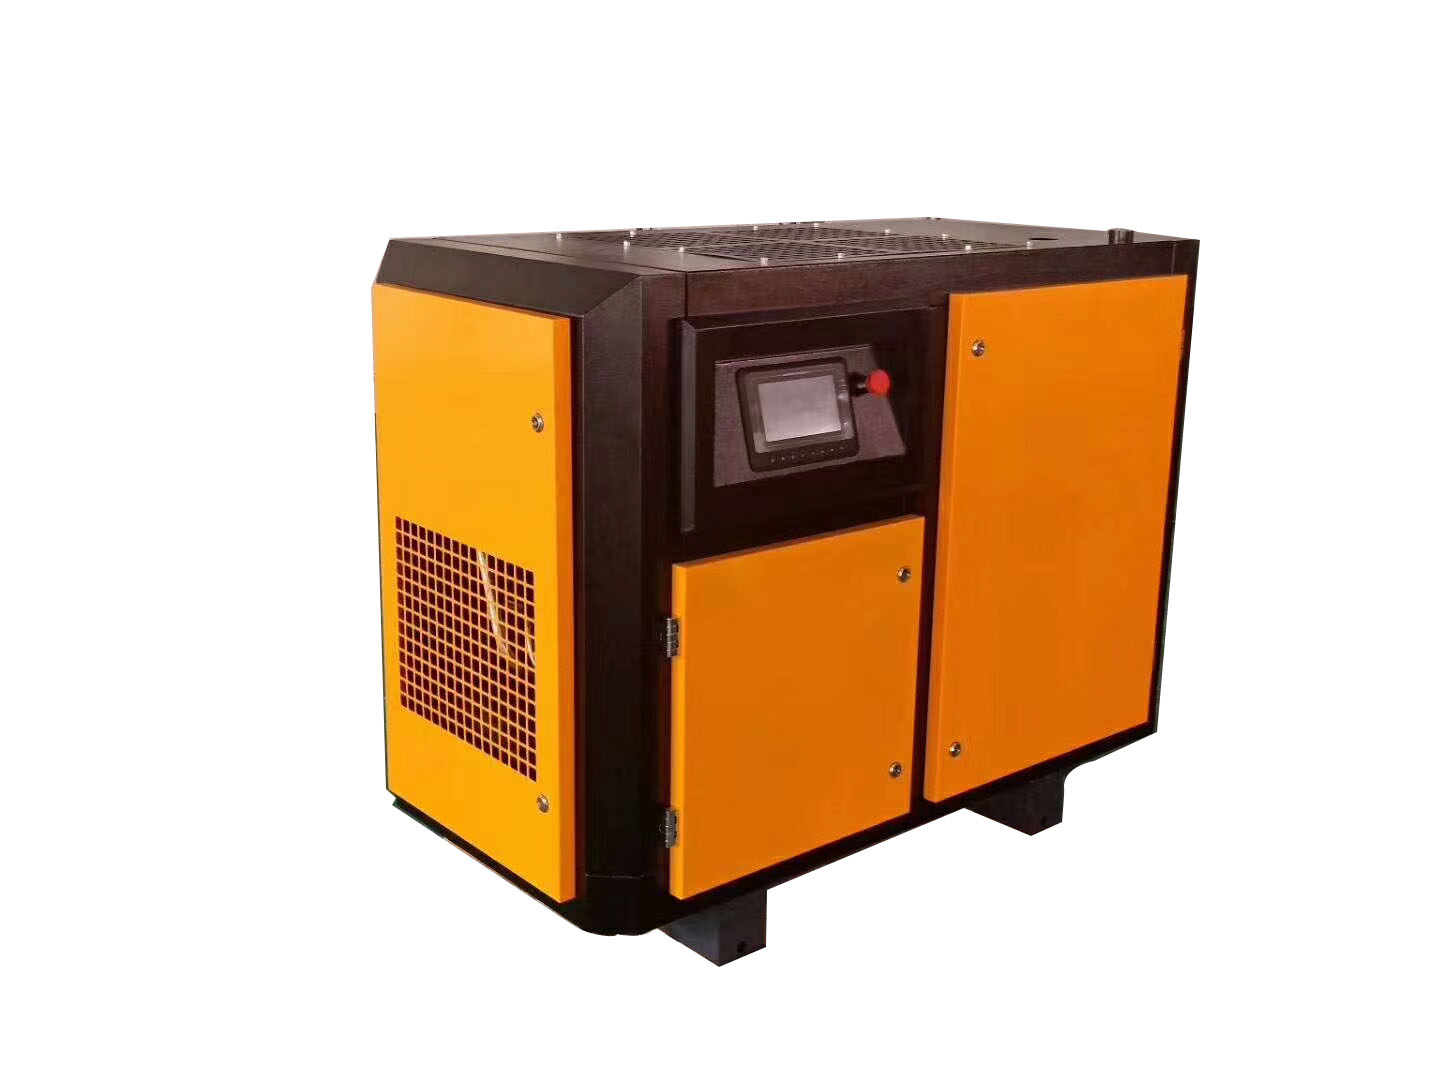 11kw integrated compressor for laser cutting machine